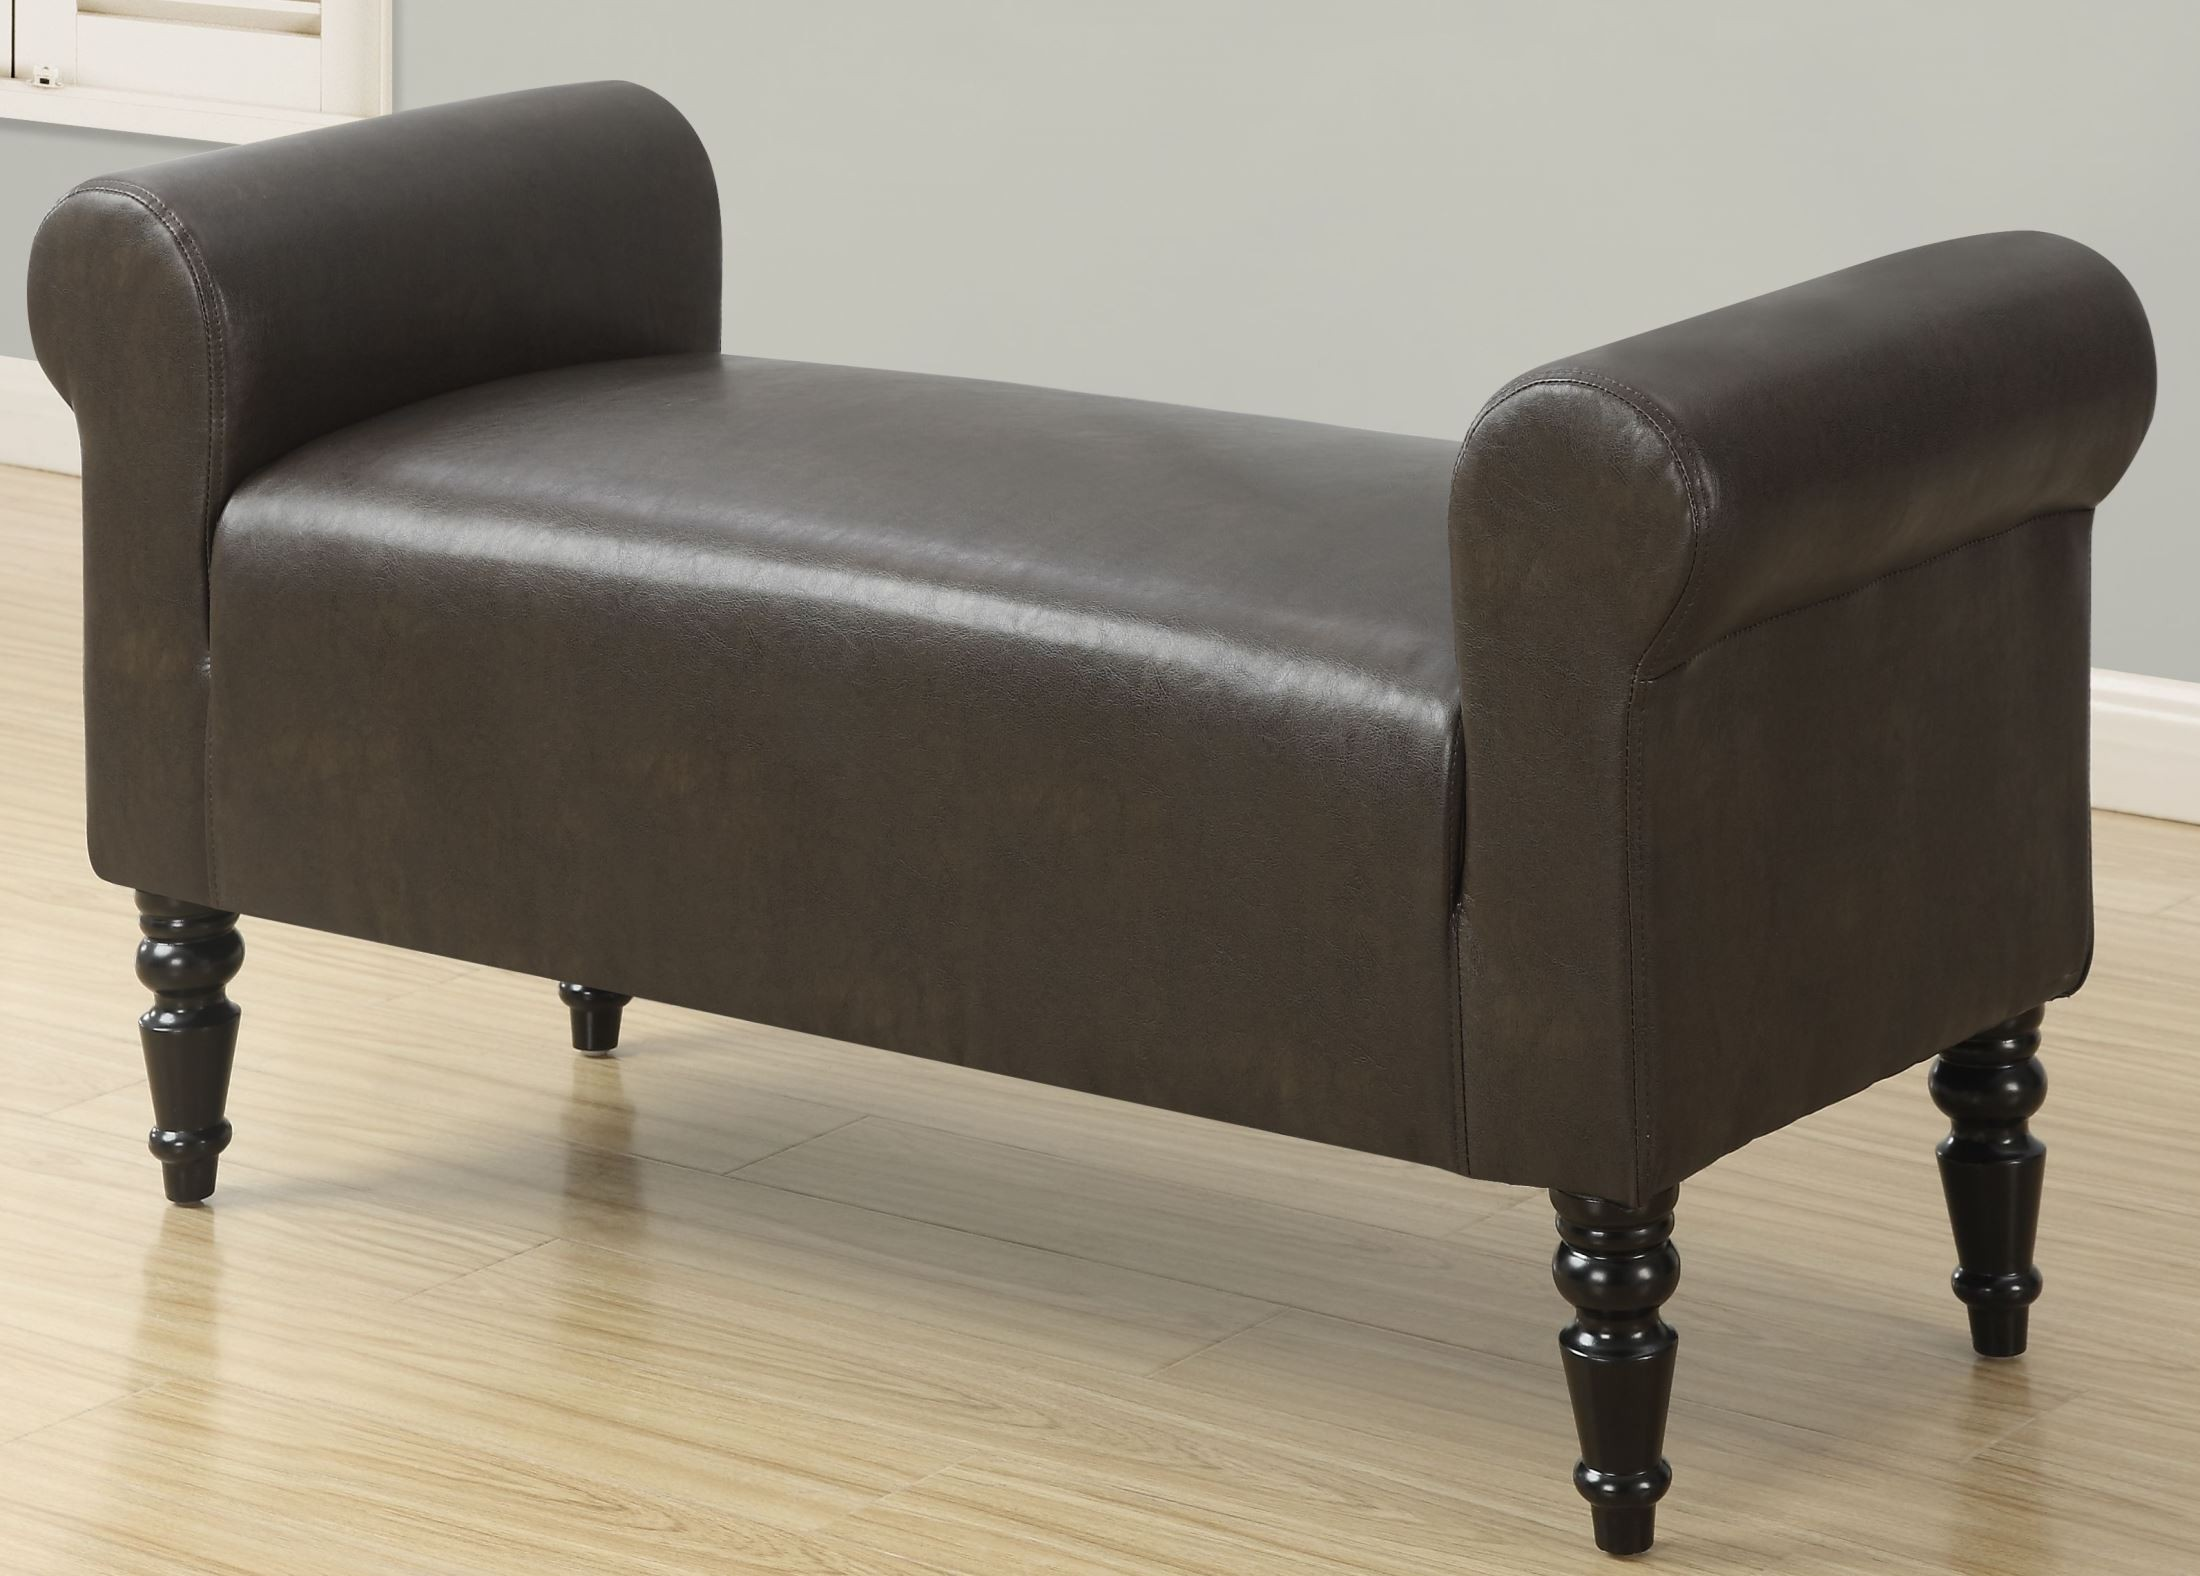 Style Dark Brown Leather Bench From Monarch Coleman Furniture